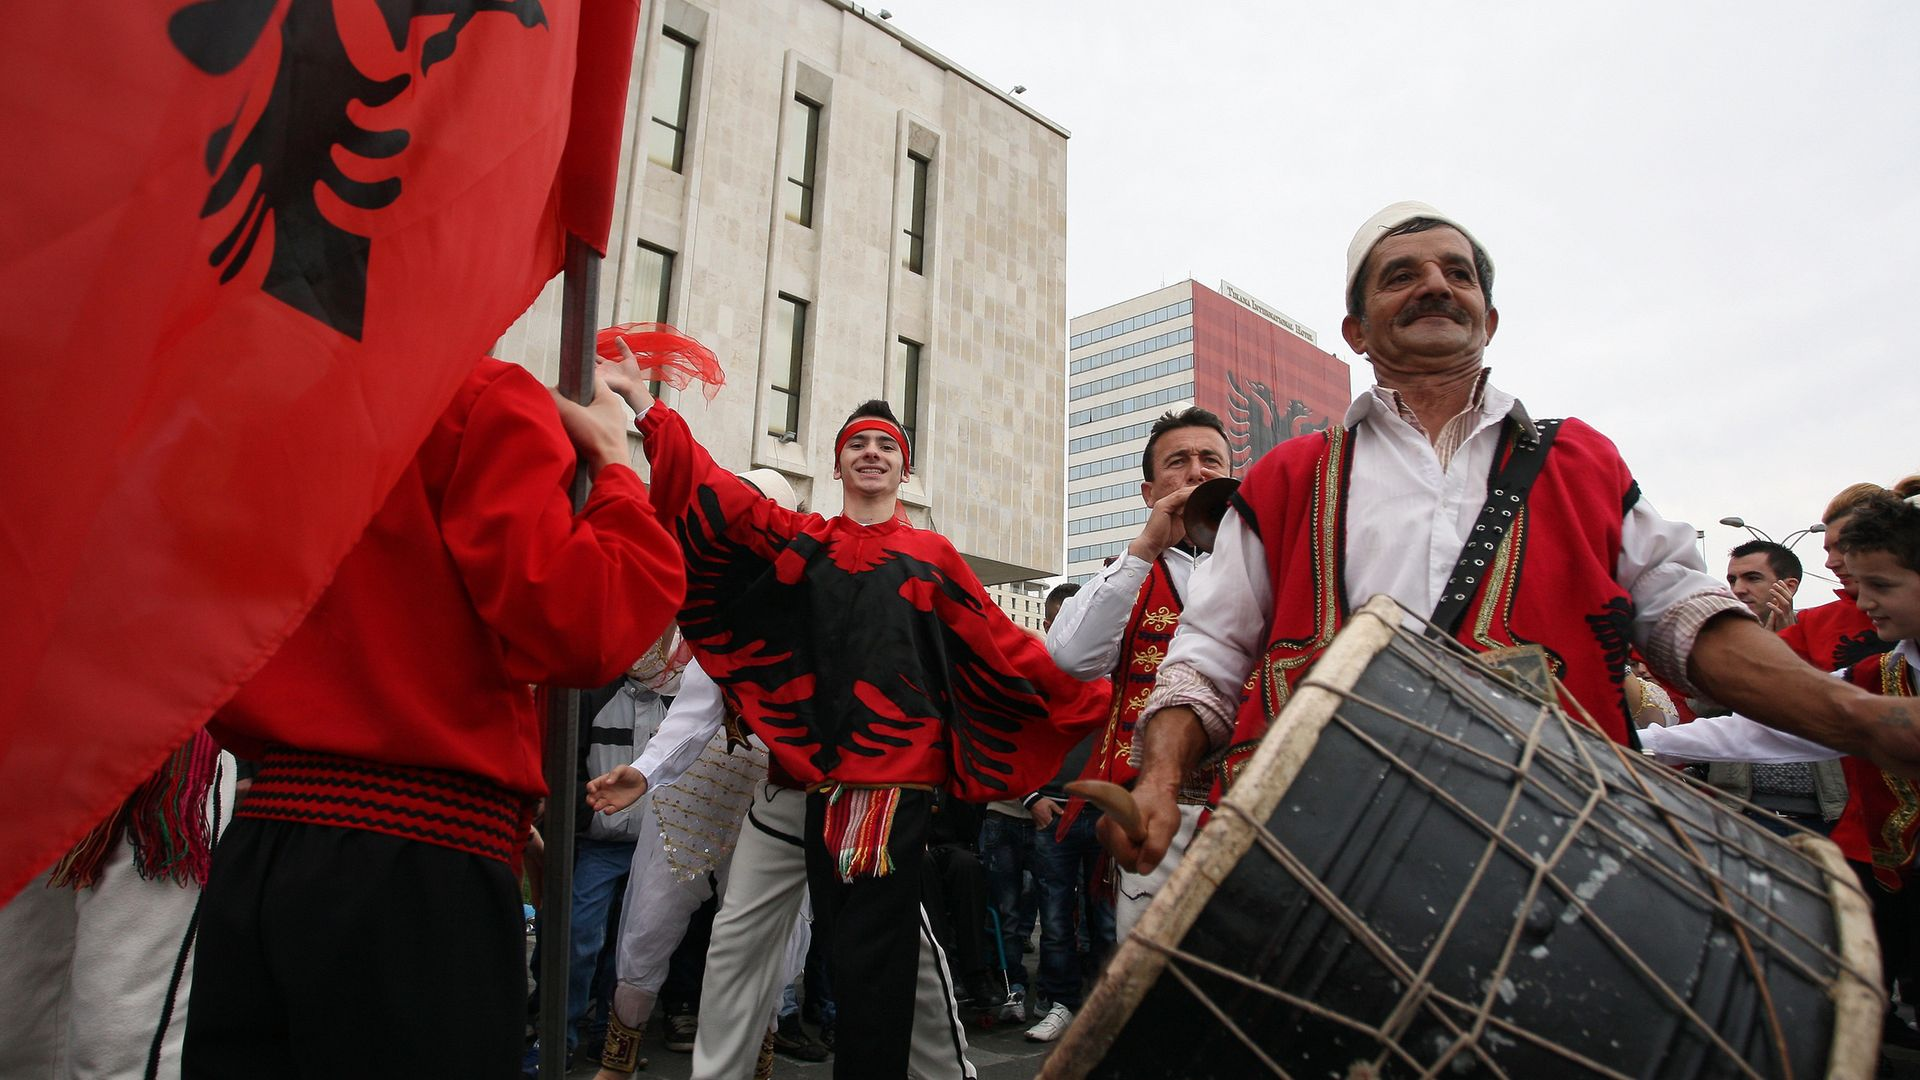 BANGING THE DRUM: Albanians in Tirana celebrate the 100th anniversary of independence from the Ottoman Empire in November, 2012 - Credit: AFP via Getty Images